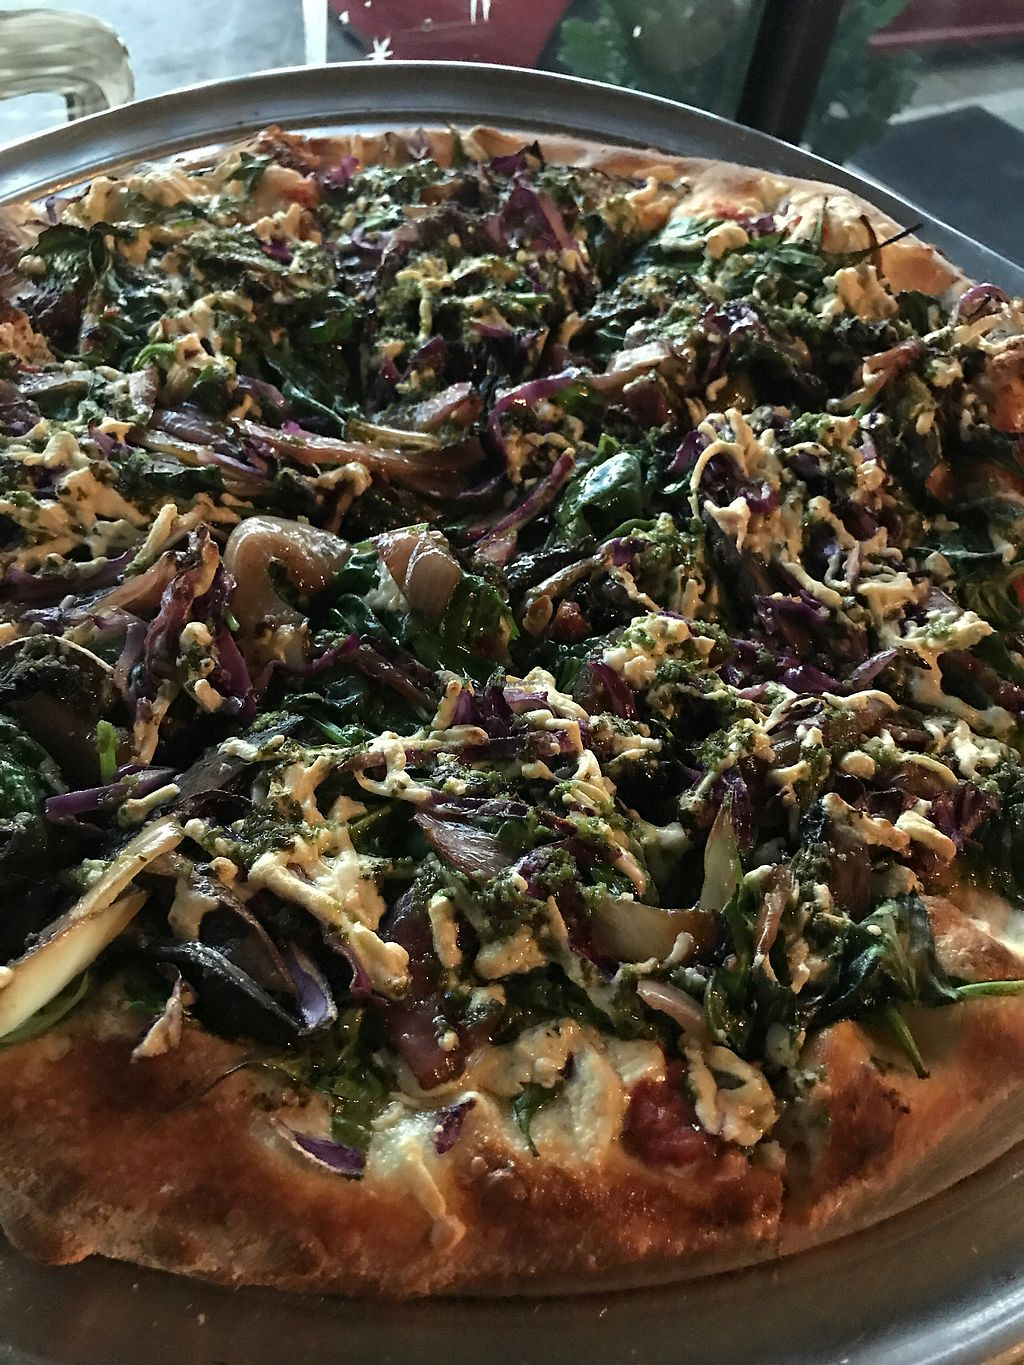 """Photo of Gourmet Pizza Company  by <a href=""""/members/profile/MIKACHUNOKAOI"""">MIKACHUNOKAOI</a> <br/>cheeseless pizza with vegan Daiya cheese and drizzled with pesto #superyum!!! <br/> August 13, 2017  - <a href='/contact/abuse/image/8076/292136'>Report</a>"""